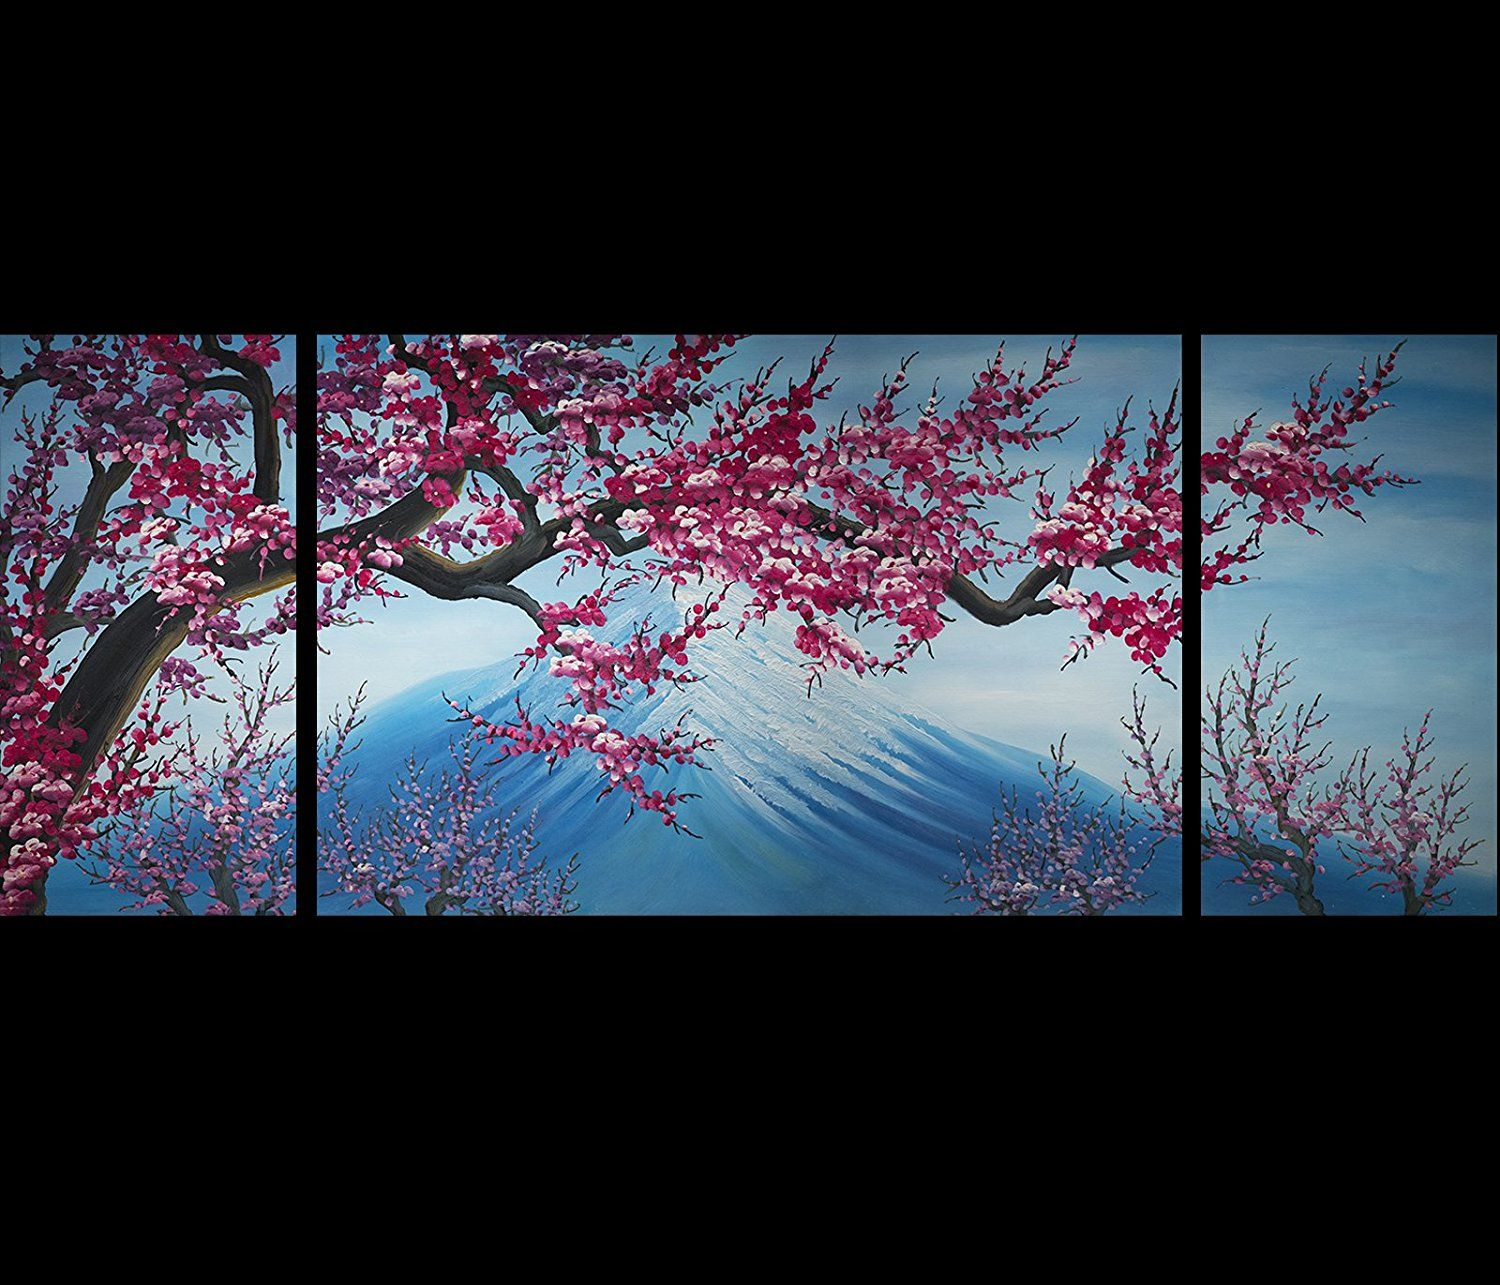 Amazon.com: Abstract Art Chinese Flower Plum Blossom Feng Shui Oil Painting: Abstract Canvas Print: Paintings